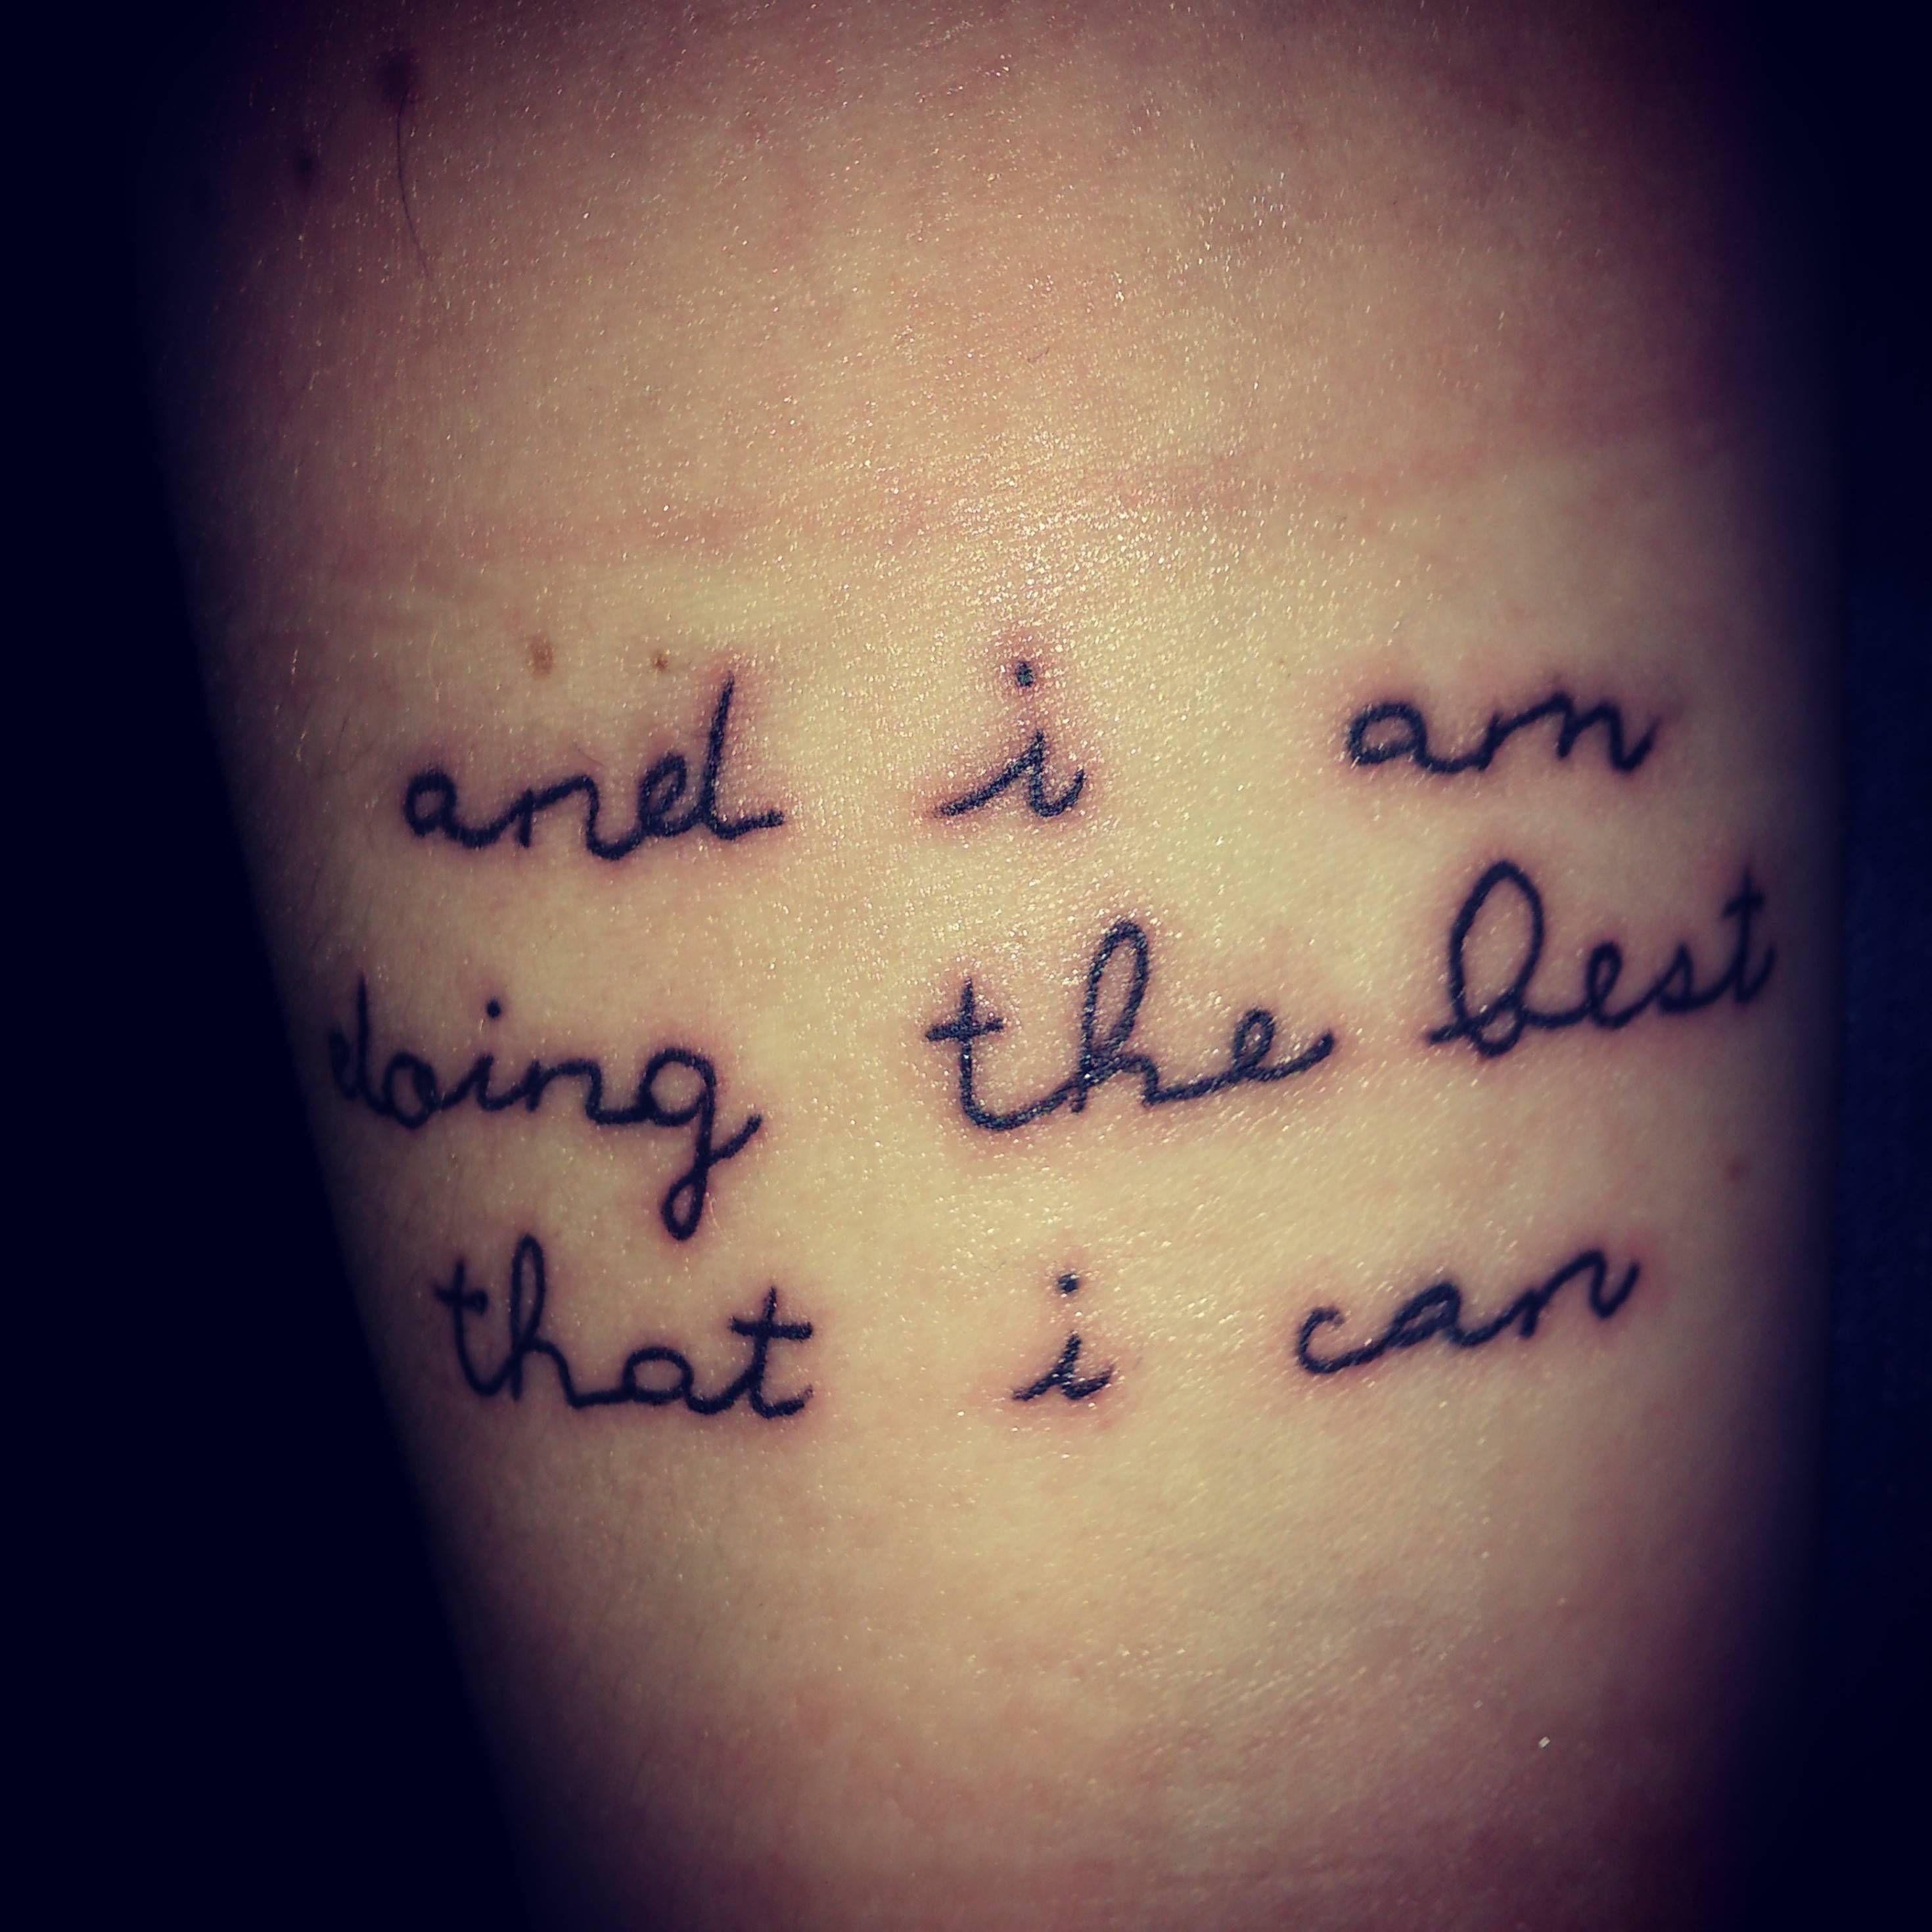 Modest mouse tat tattoo dreaming pinterest tat for Modest mouse tattoo